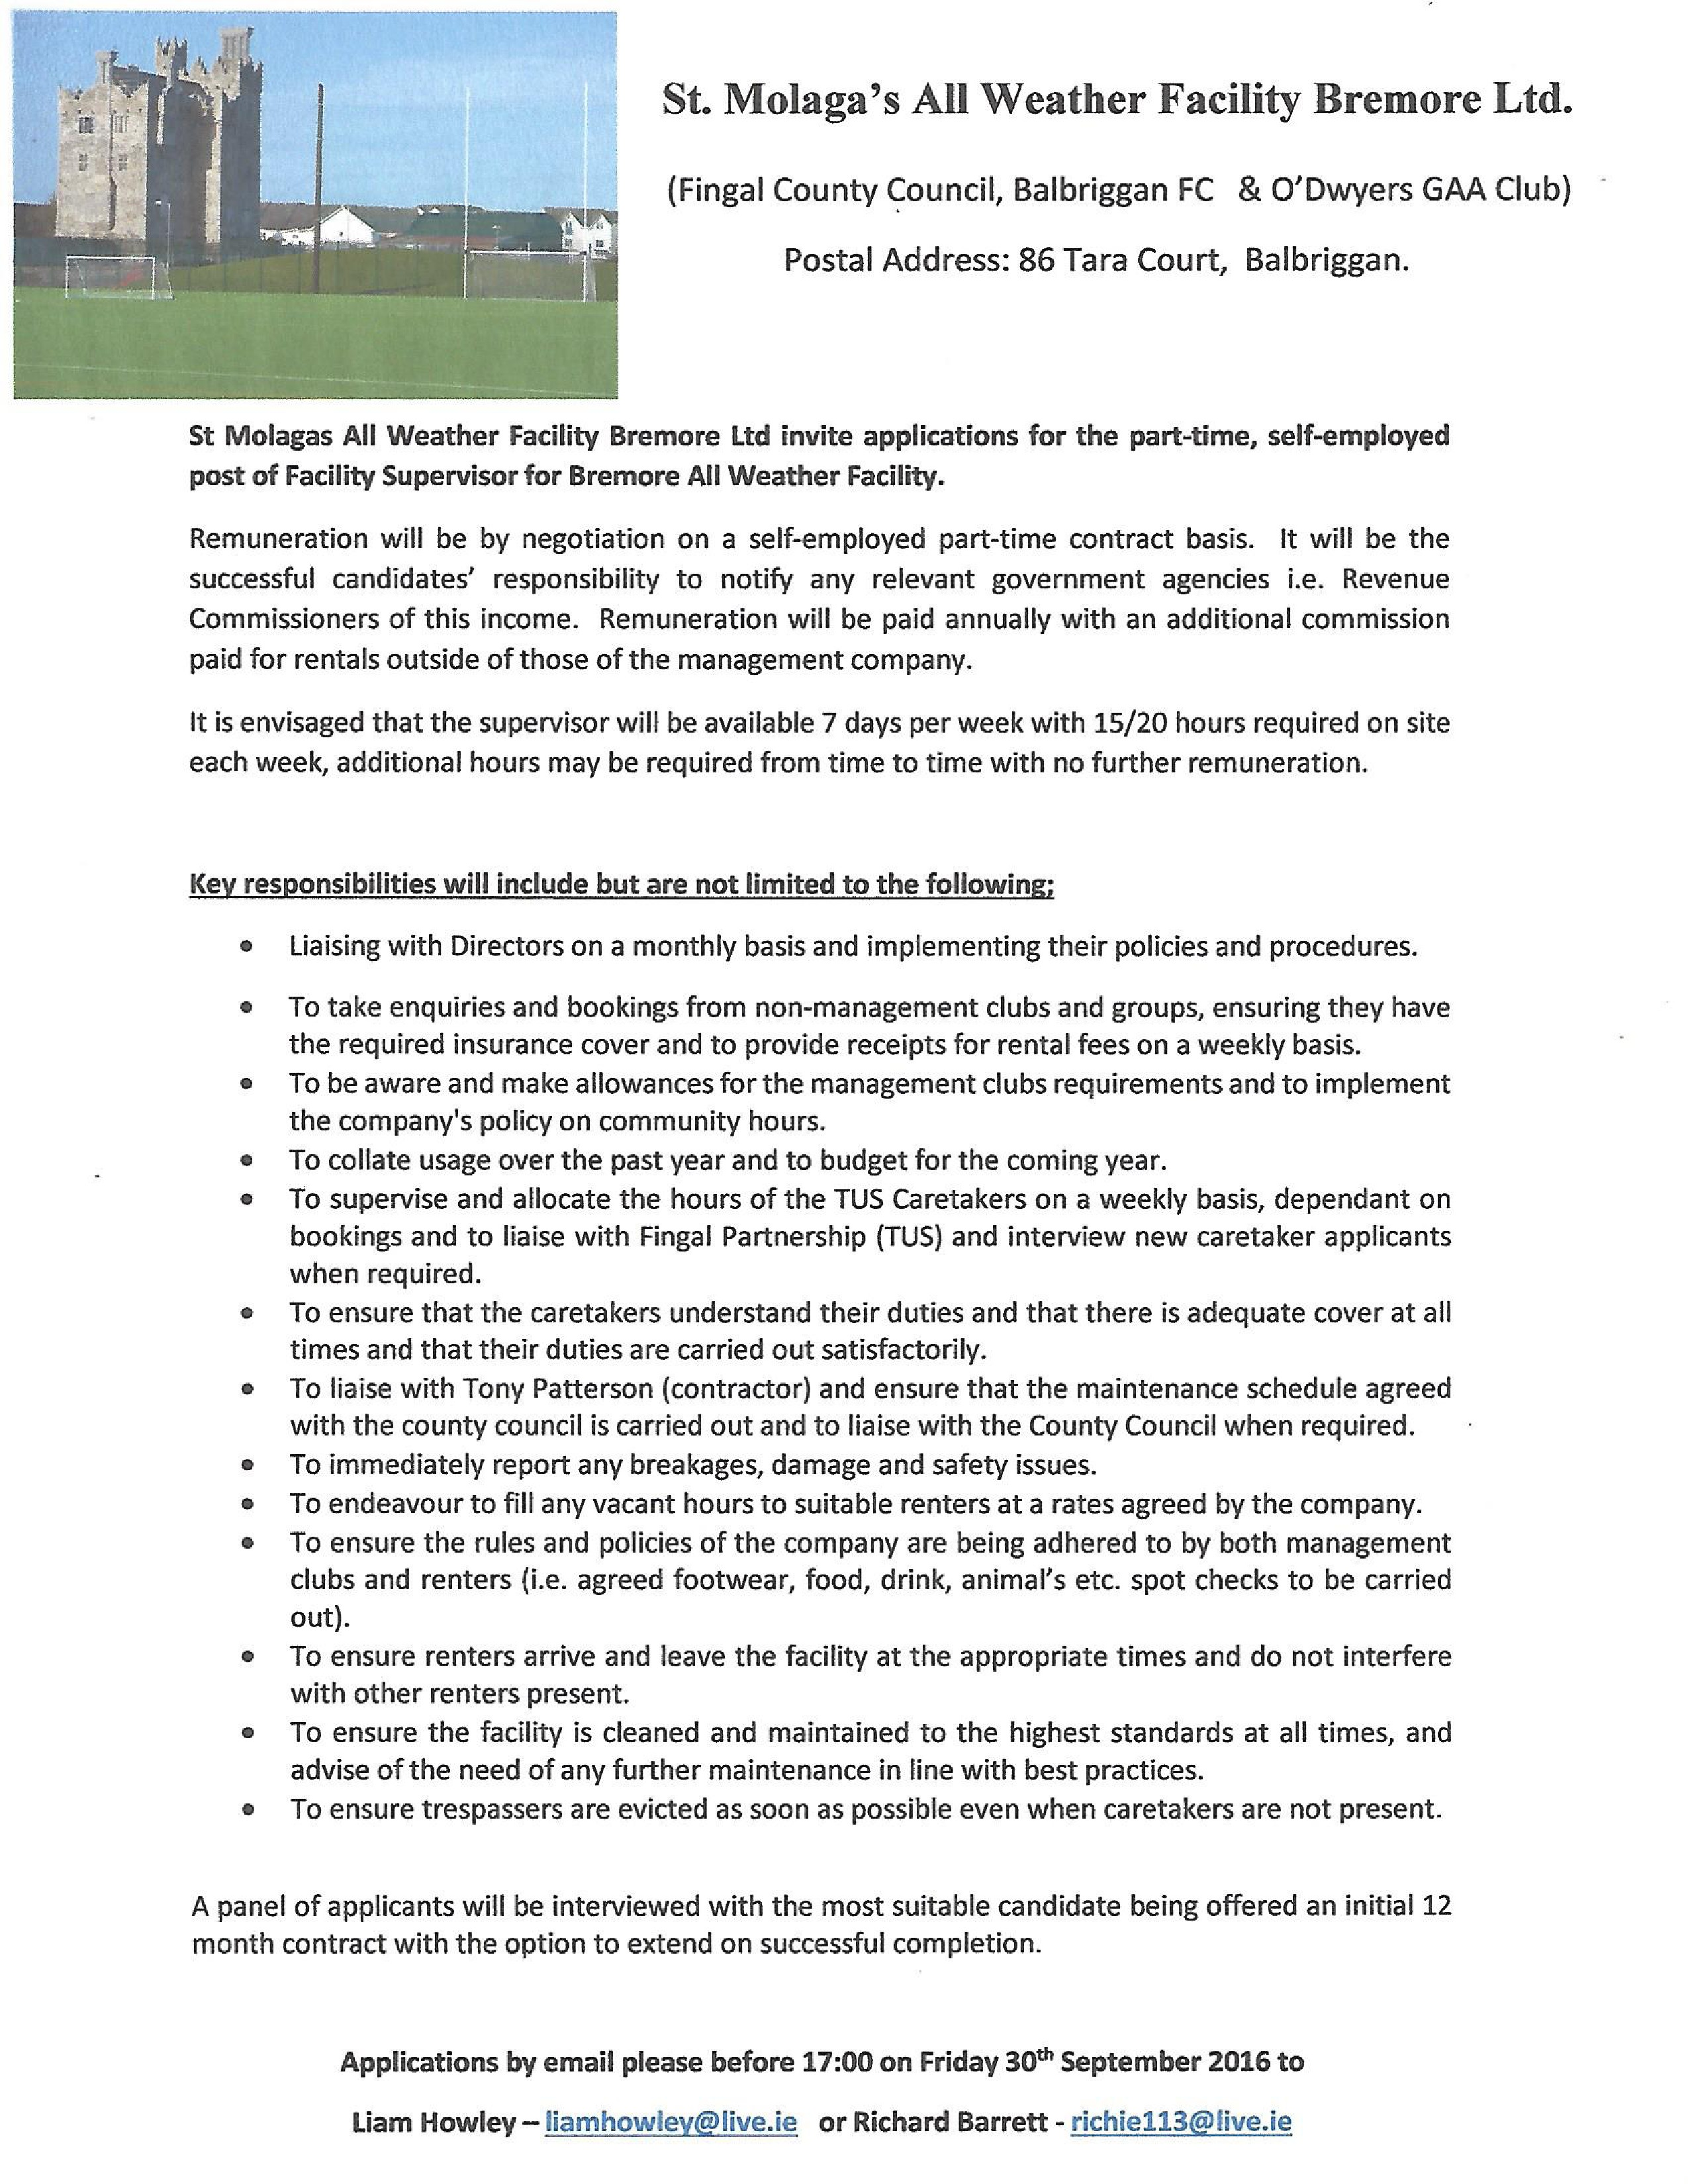 All Weather Pitch job vacancy